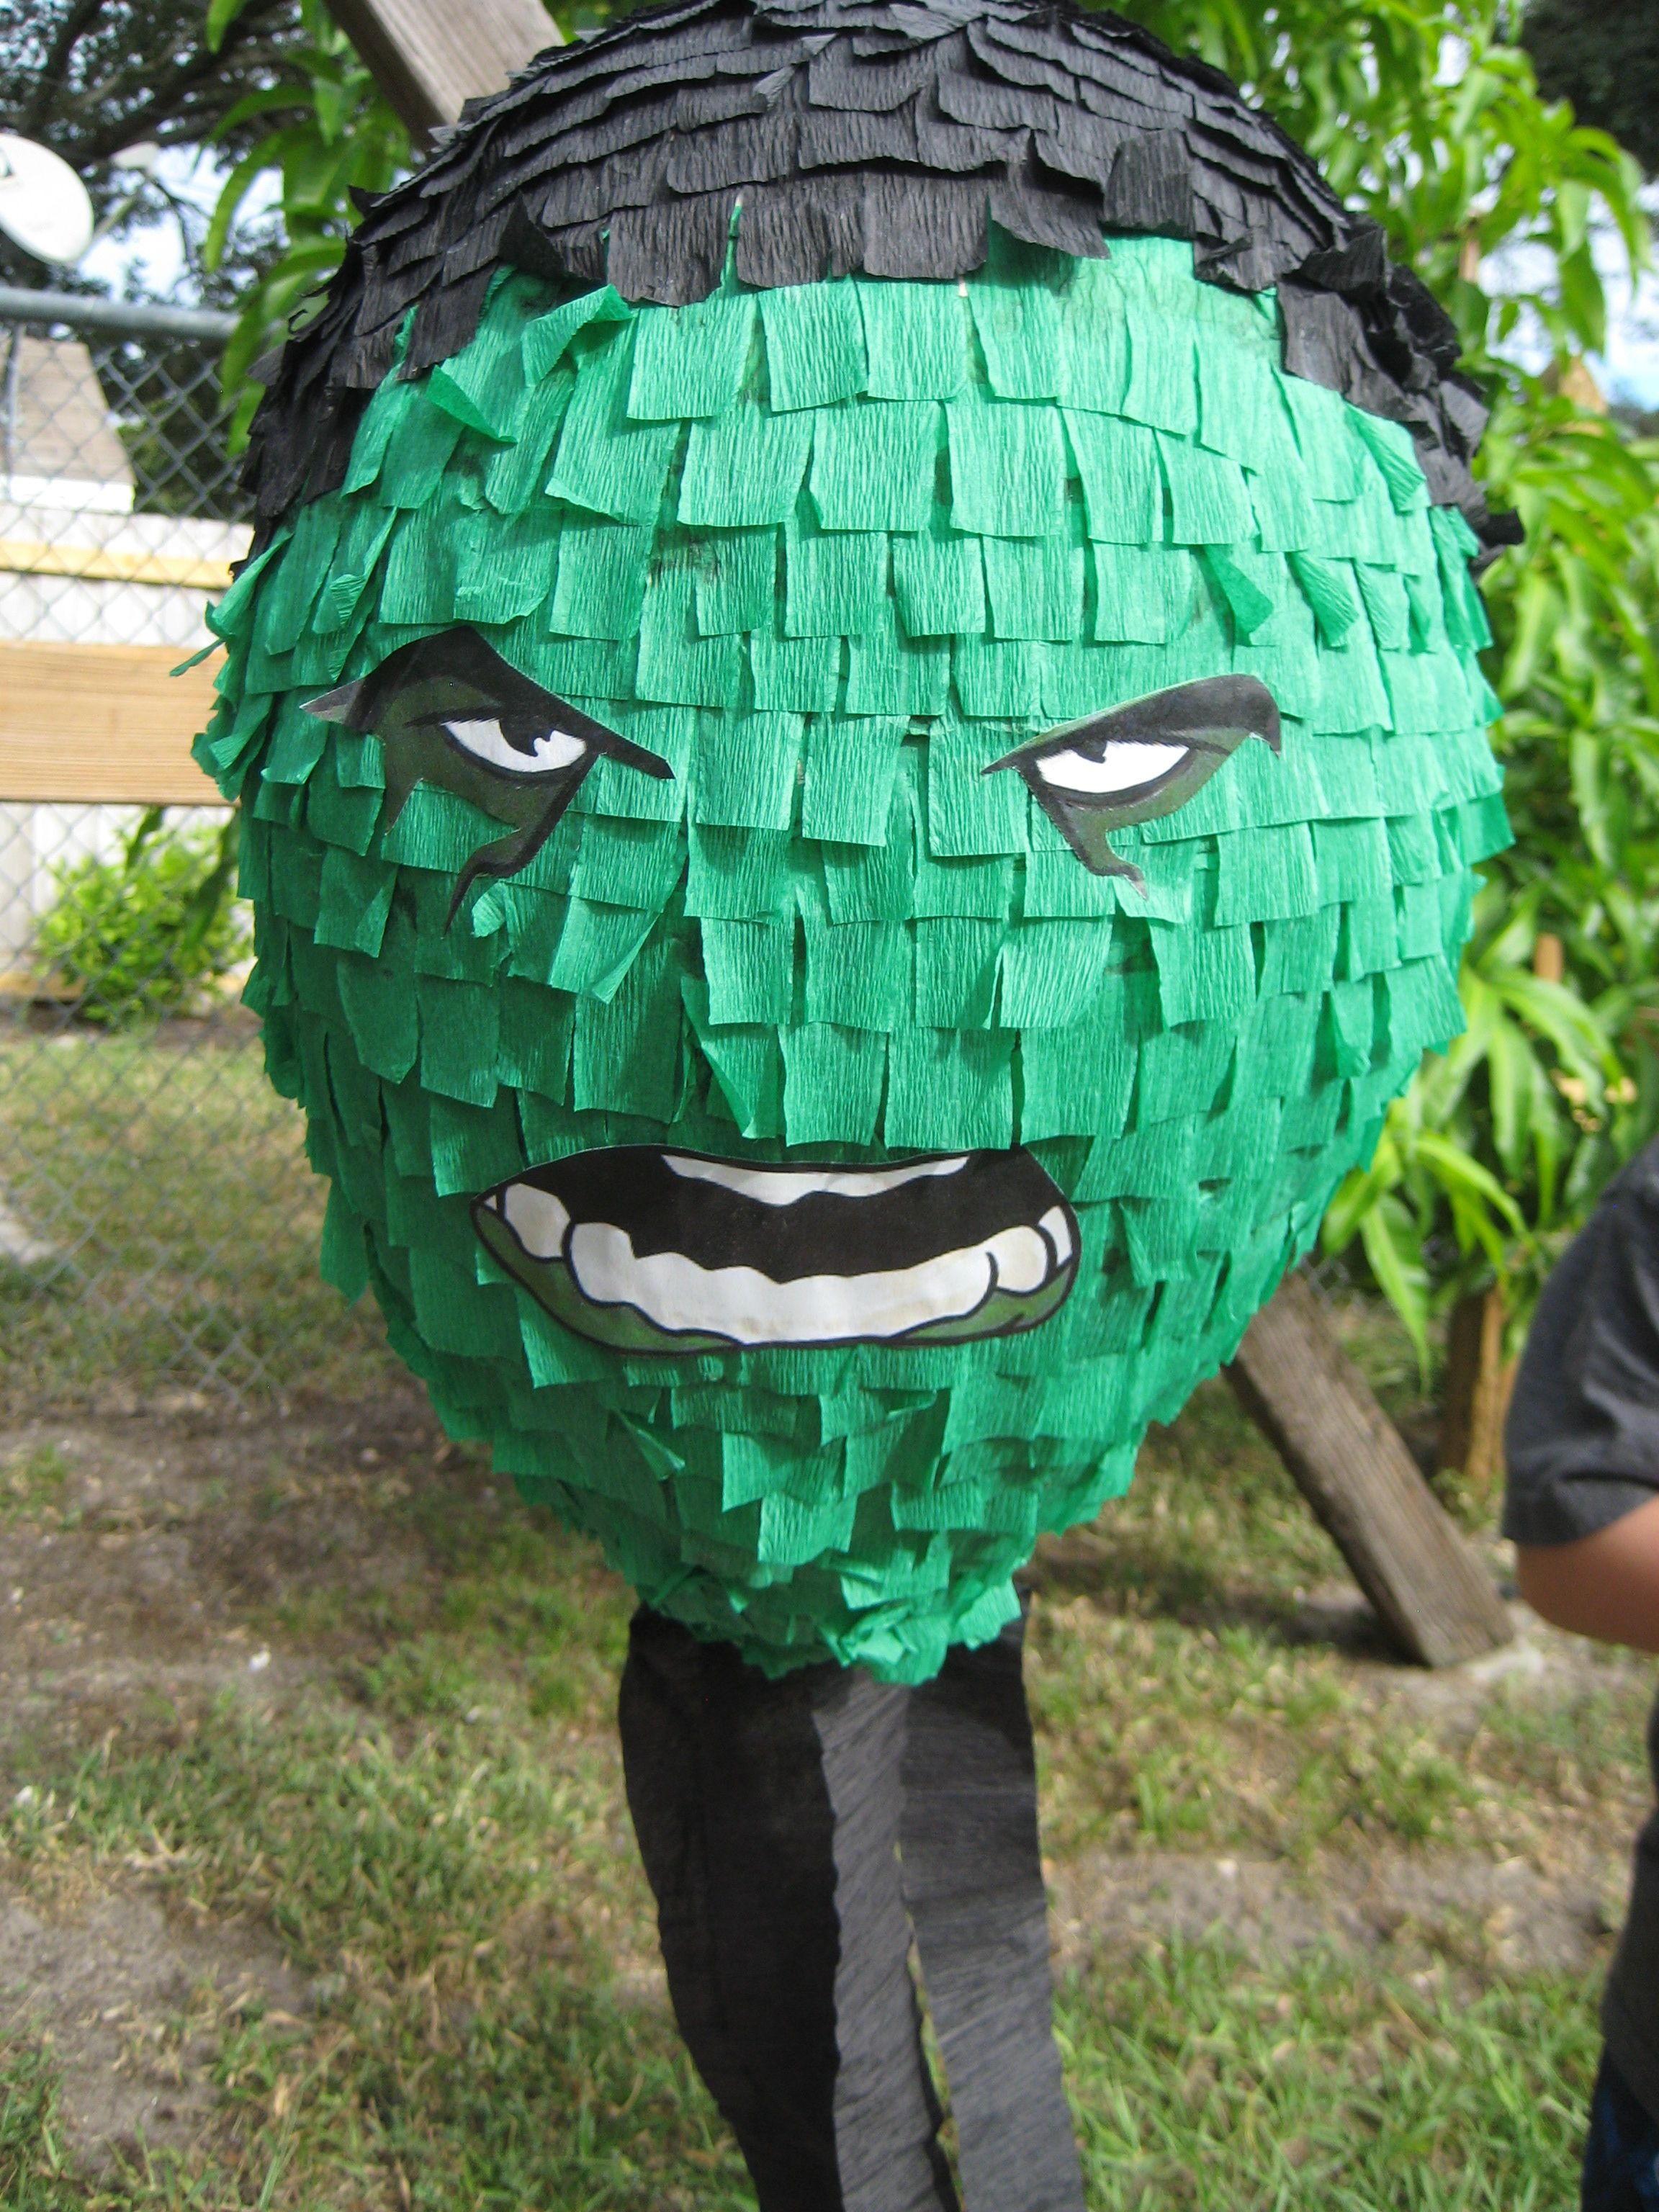 Hulk Pinata Hulk Party Pinterest Hulk Party